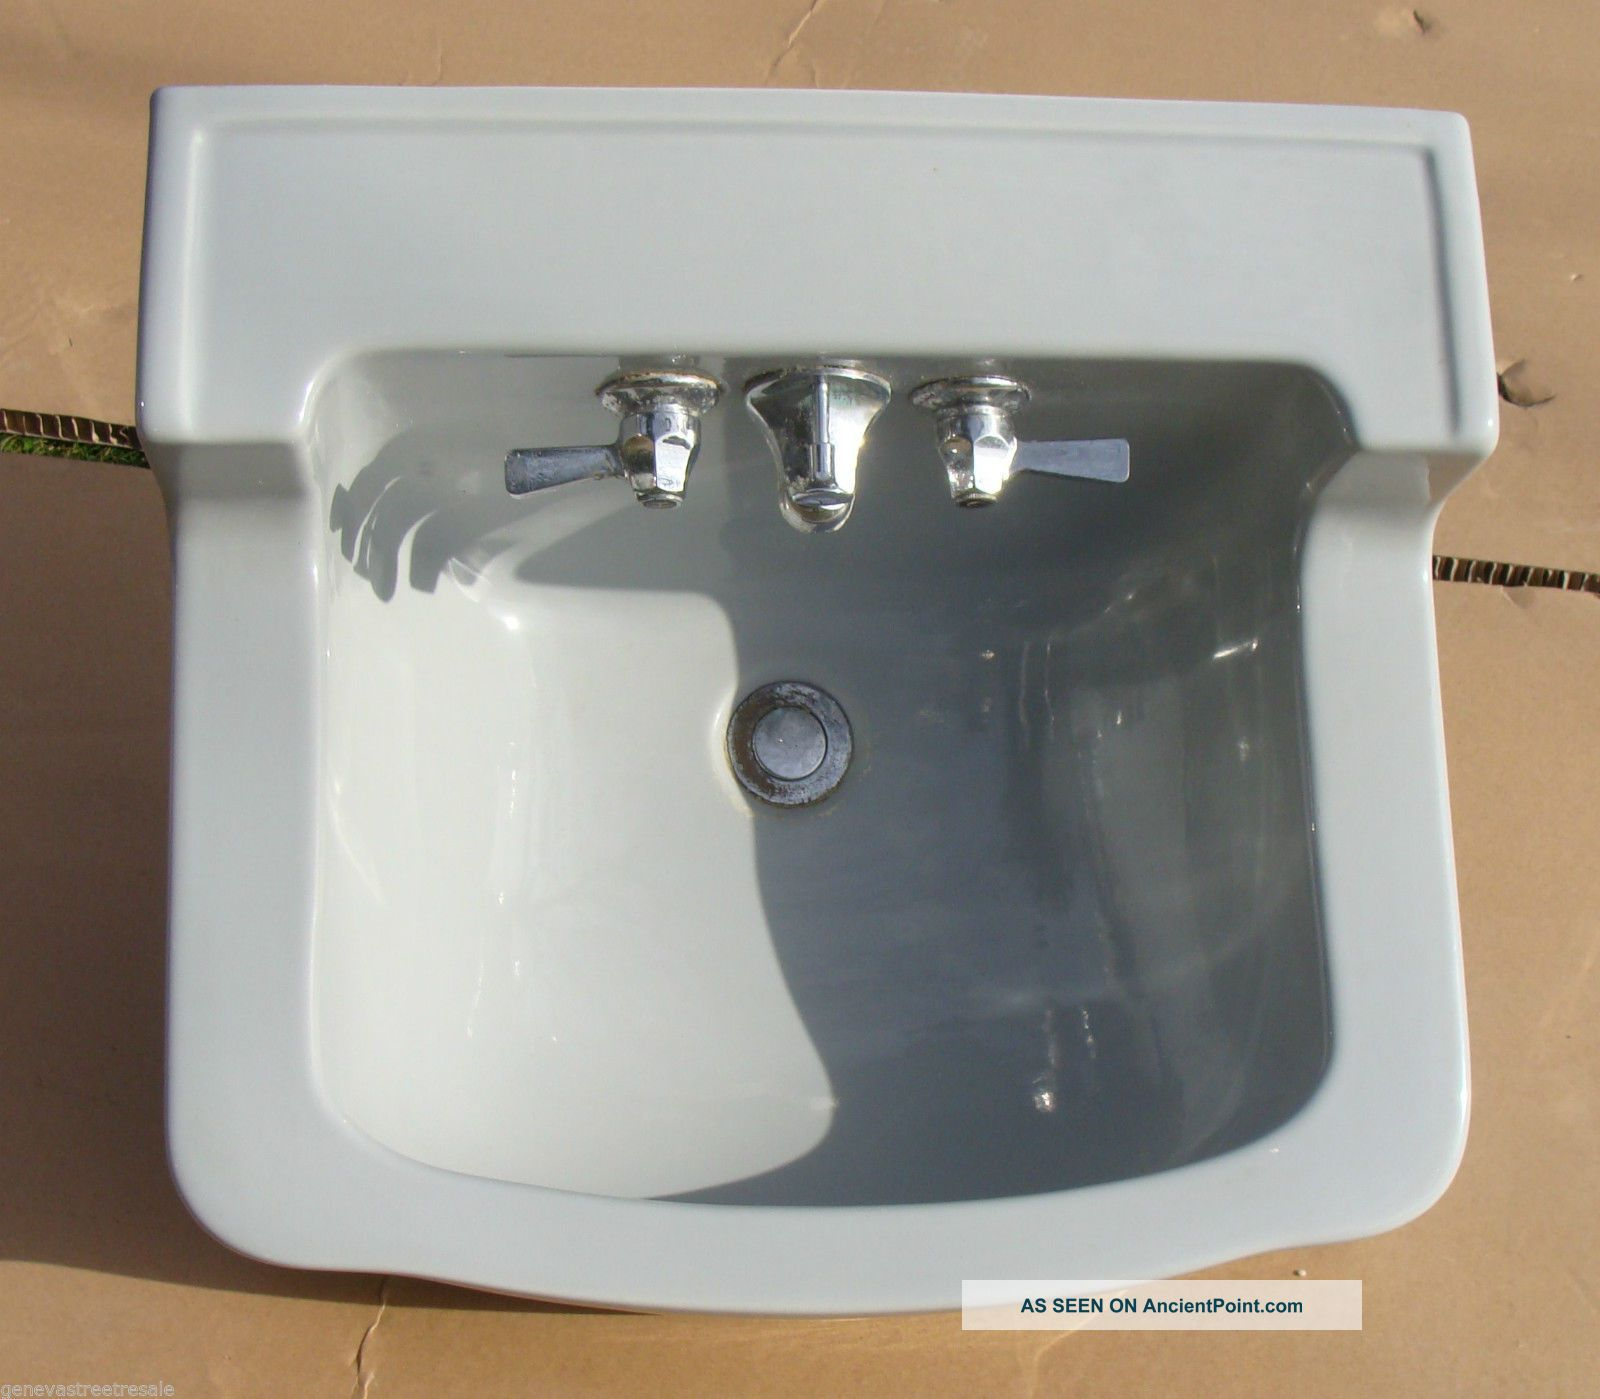 Vintage Briggs Bathroom Kitchen Light Gray Porcelain Sink W/fixtures Mid Century Sinks photo